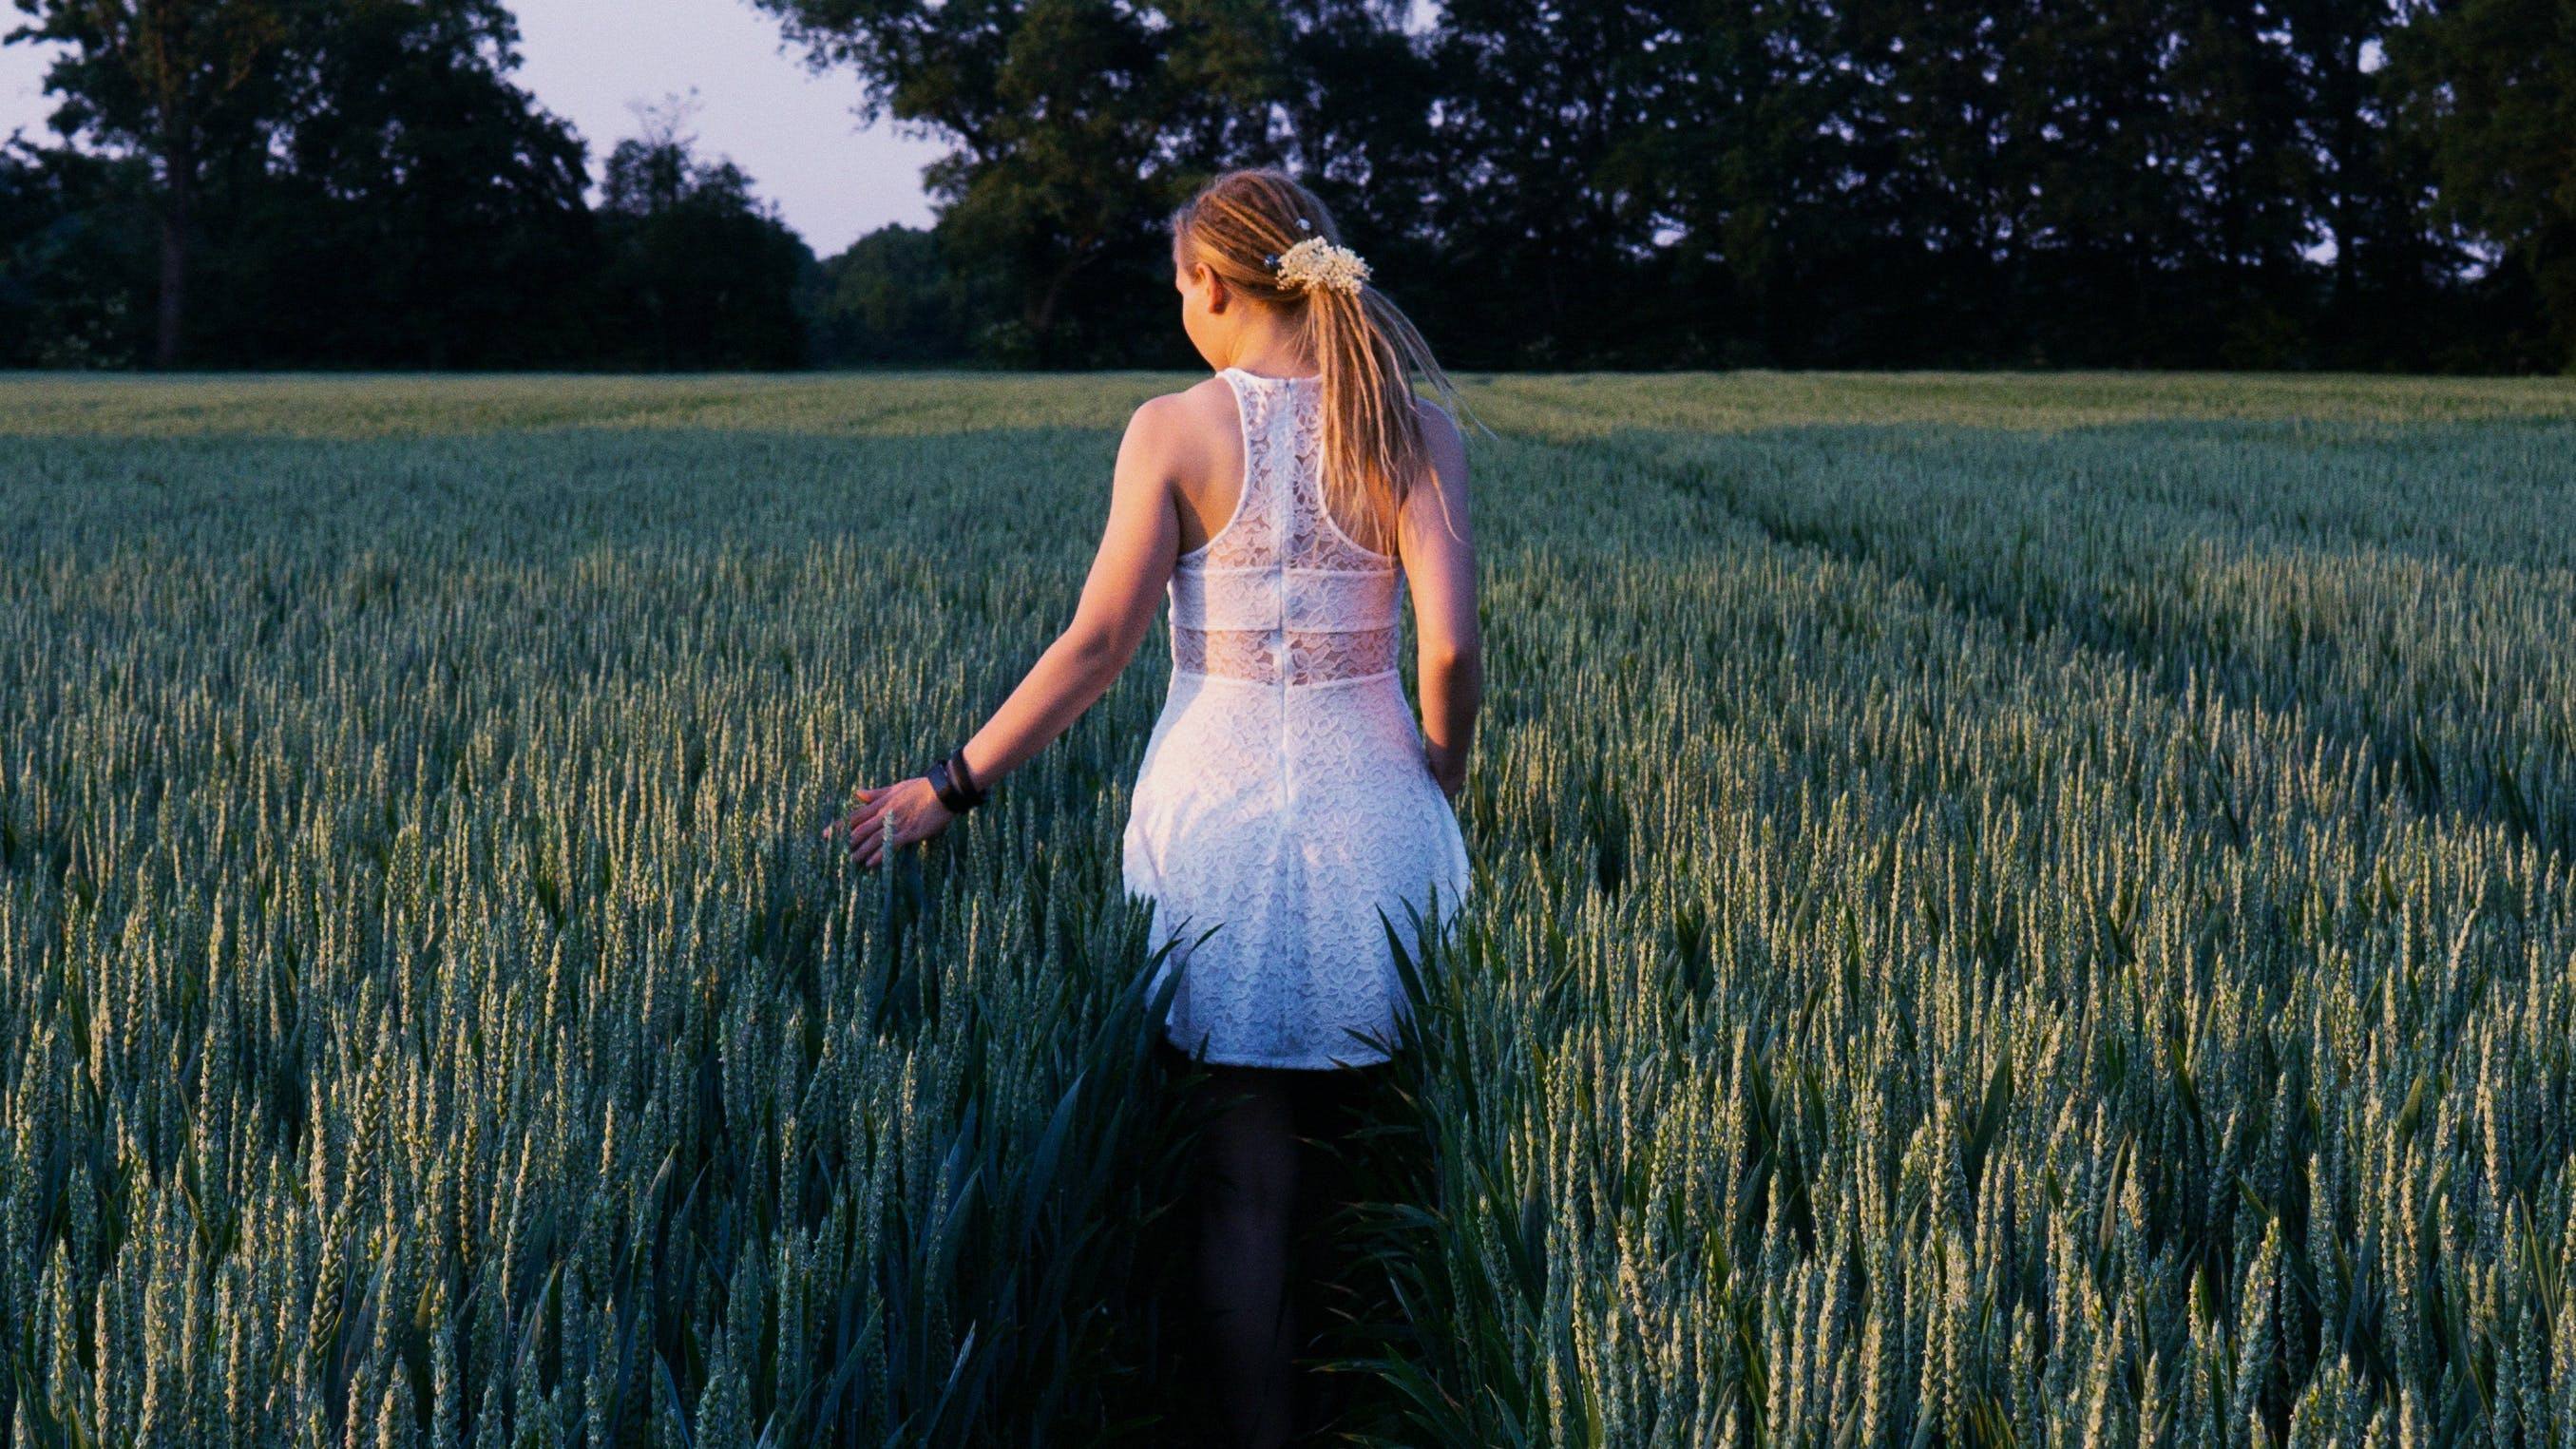 Woman Walking in Between Grass Field at Daytime